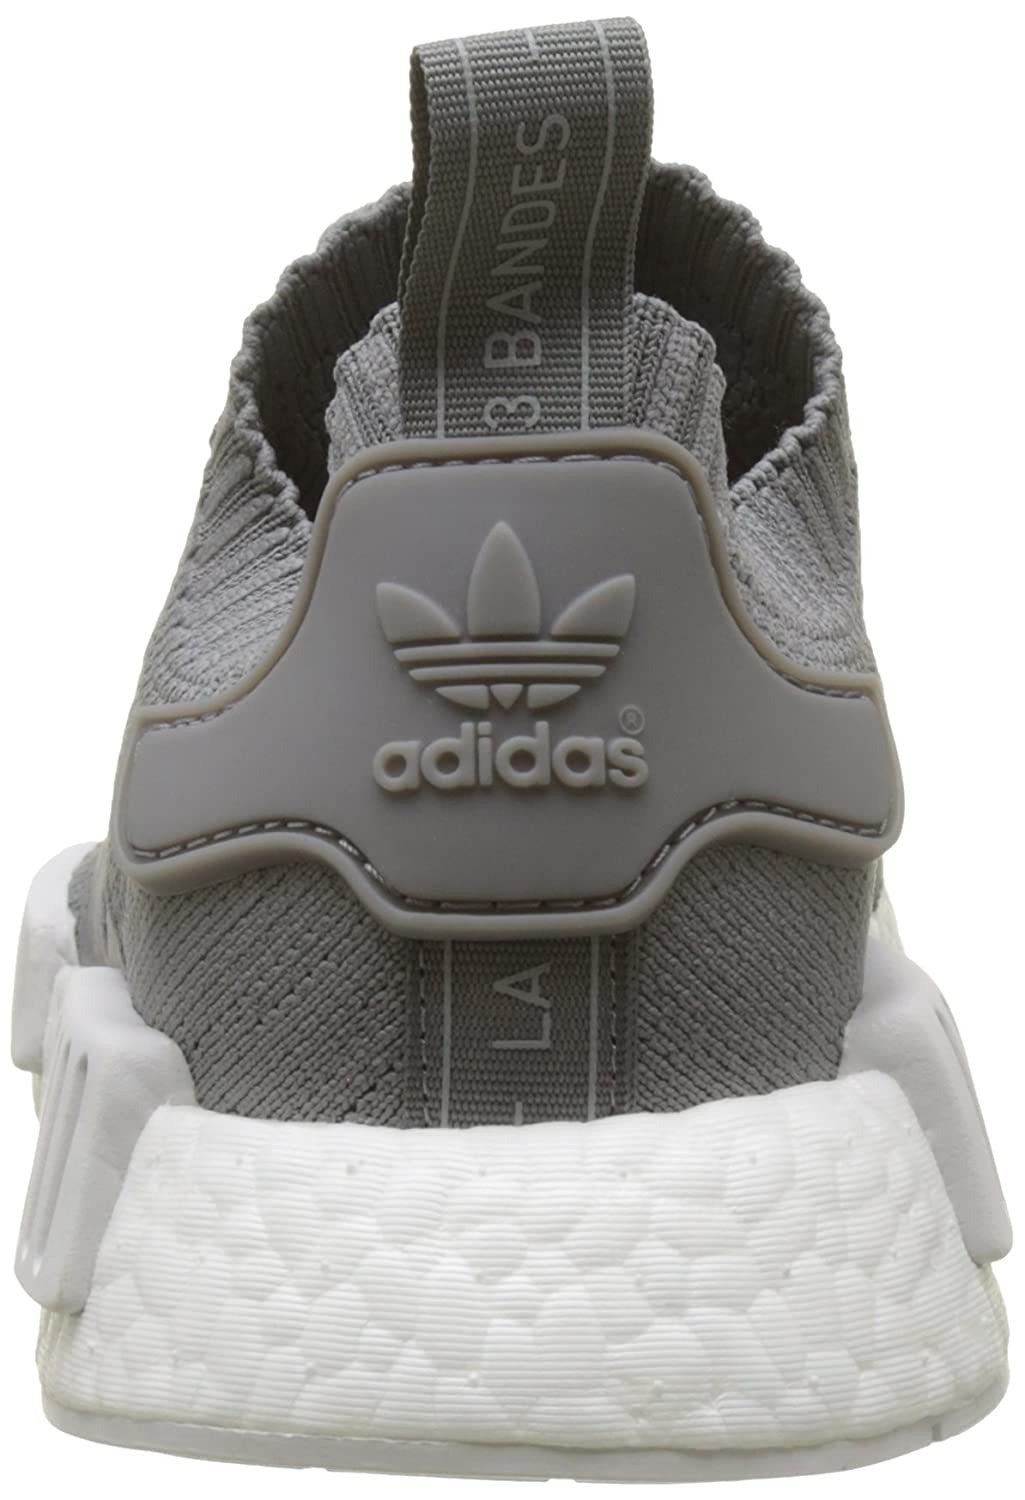 adidas Women s NMD R1 W Pk 762 Trainers  Amazon.co.uk  Shoes   Bags f175a8ffa